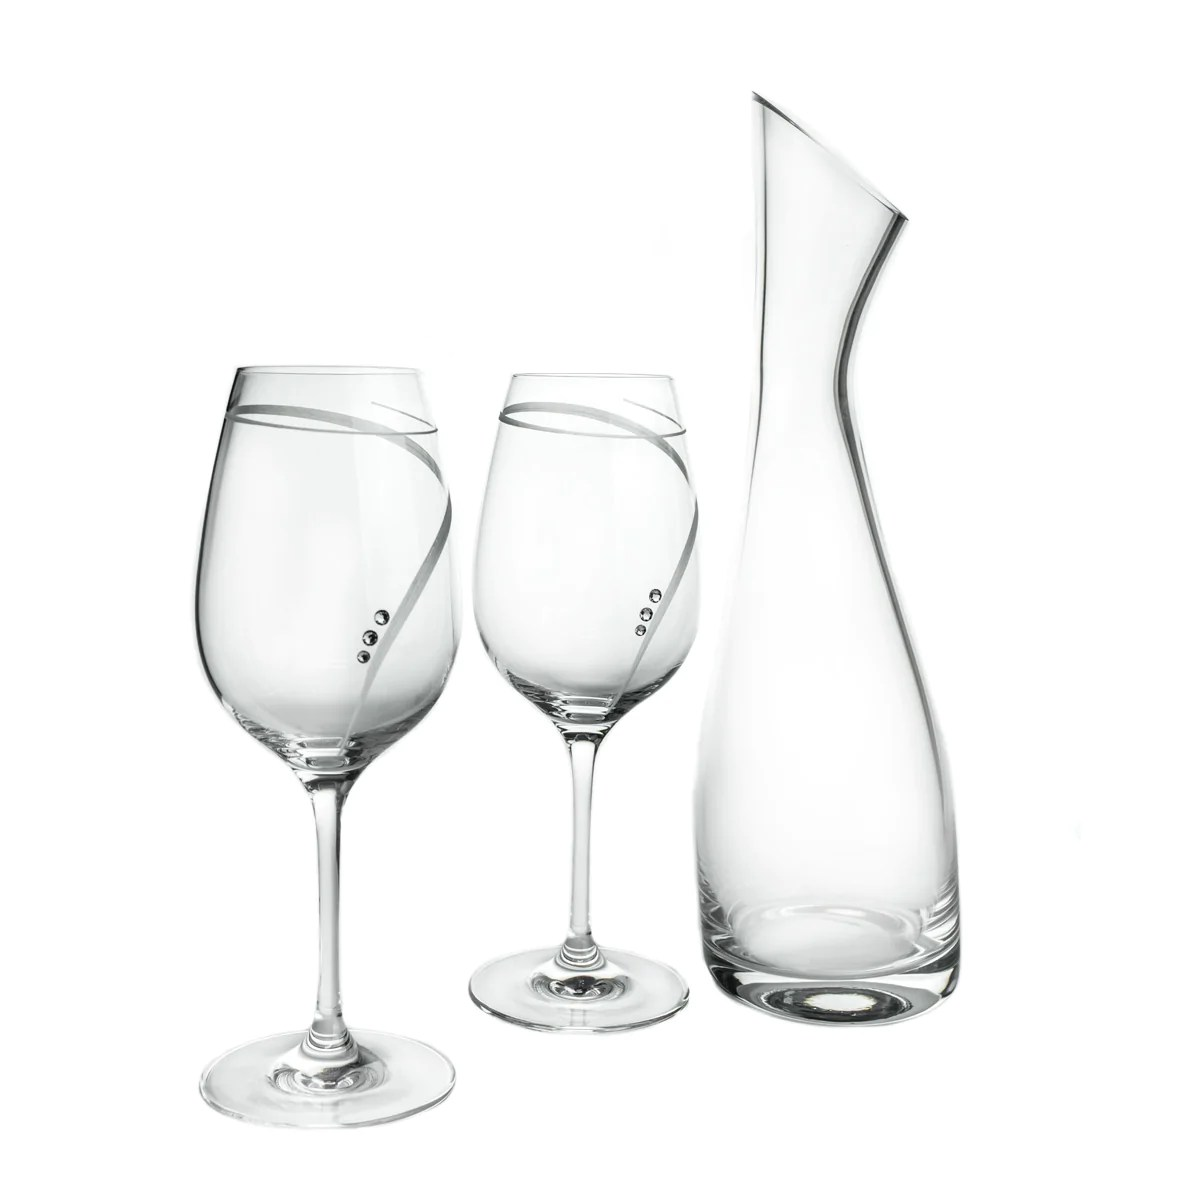 Decanter Wine Glas Wine Decanter 2 Wine Glasses Set With Swarovski Crystals No Lead Content